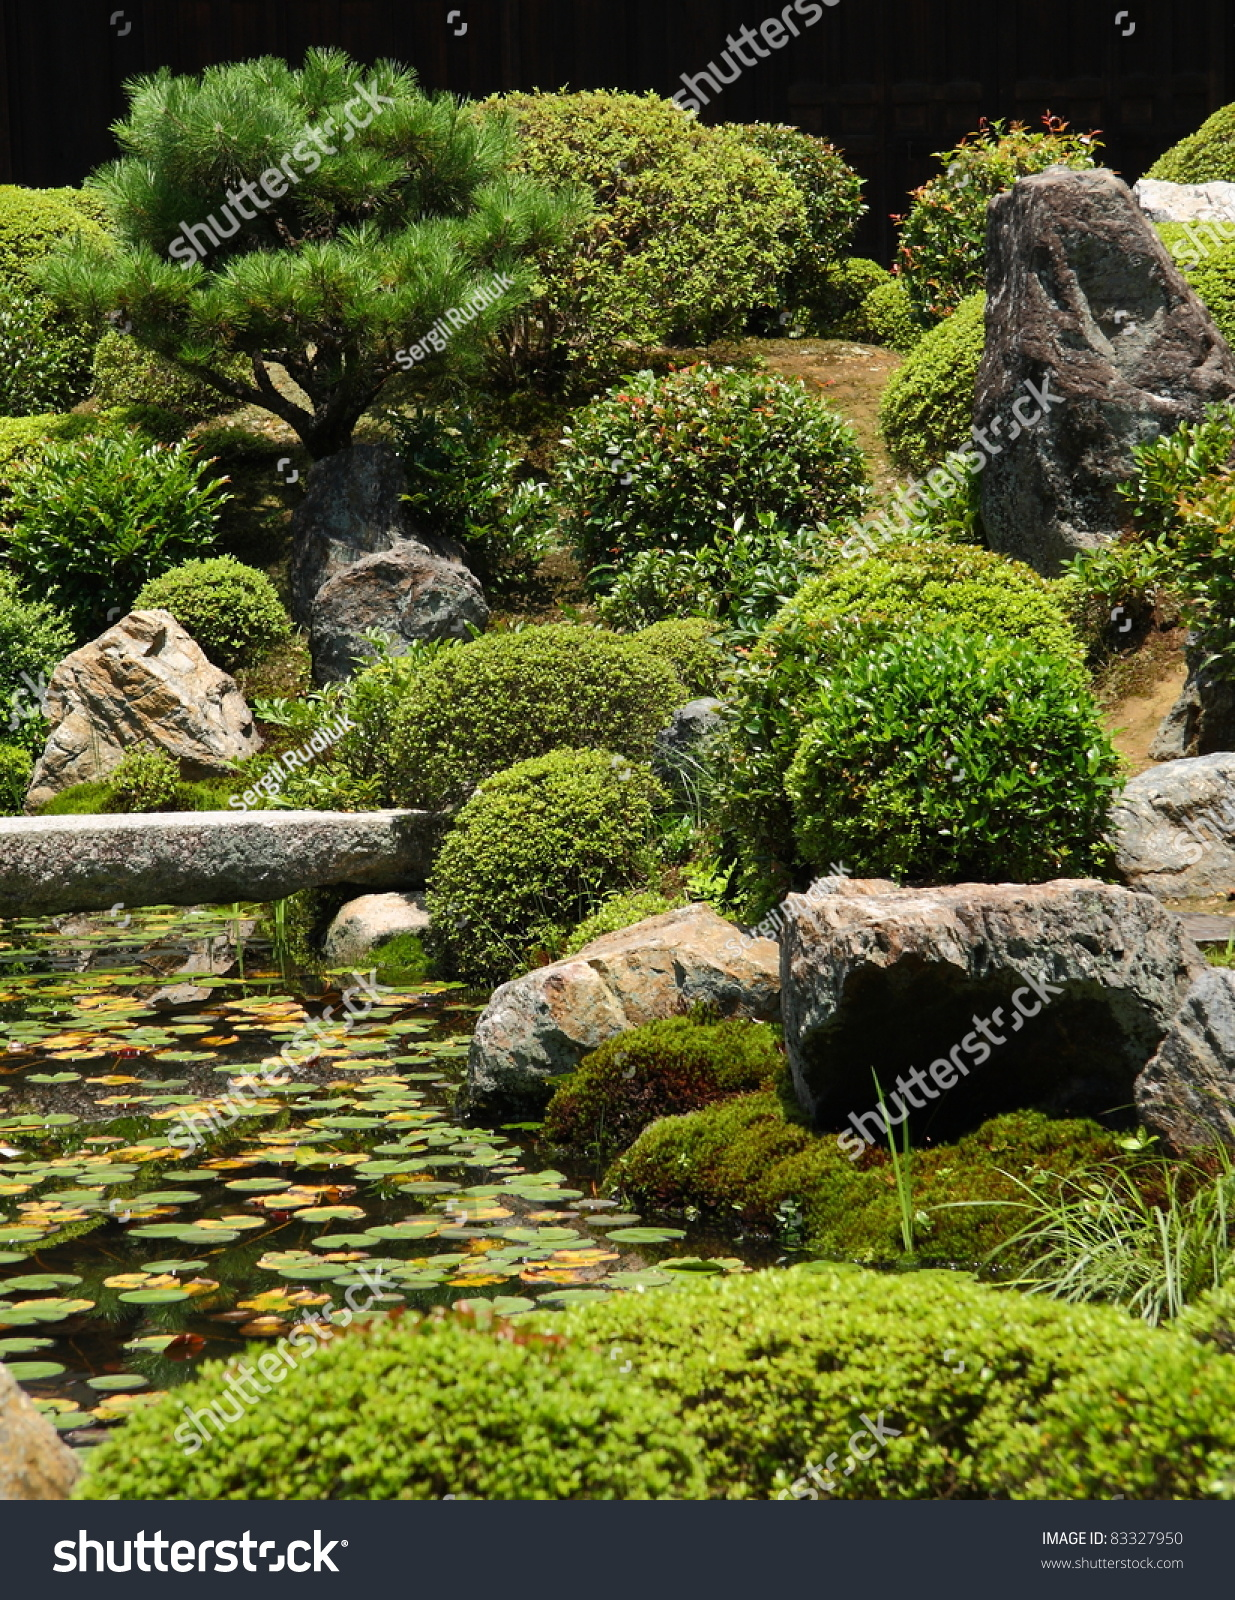 Japanese Garden Stone Bridge nice japanese garden stone bridge stock photo 83327950 - shutterstock